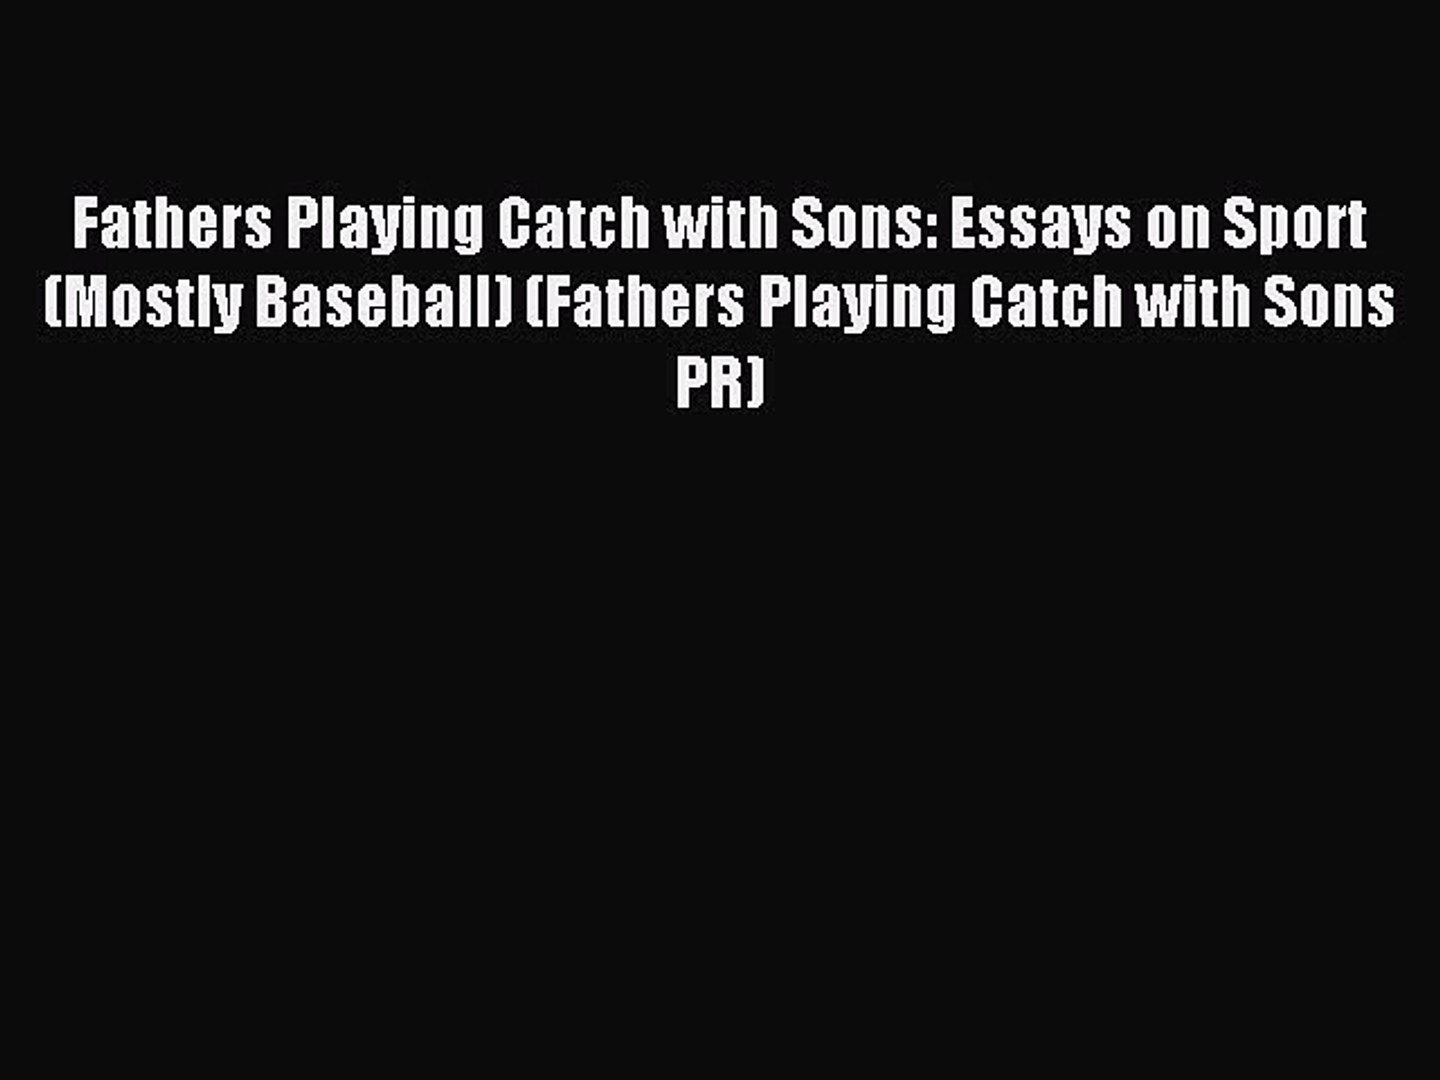 Read Fathers Playing Catch with Sons: Essays on Sport (Mostly Baseball) (Fathers Playing Catch